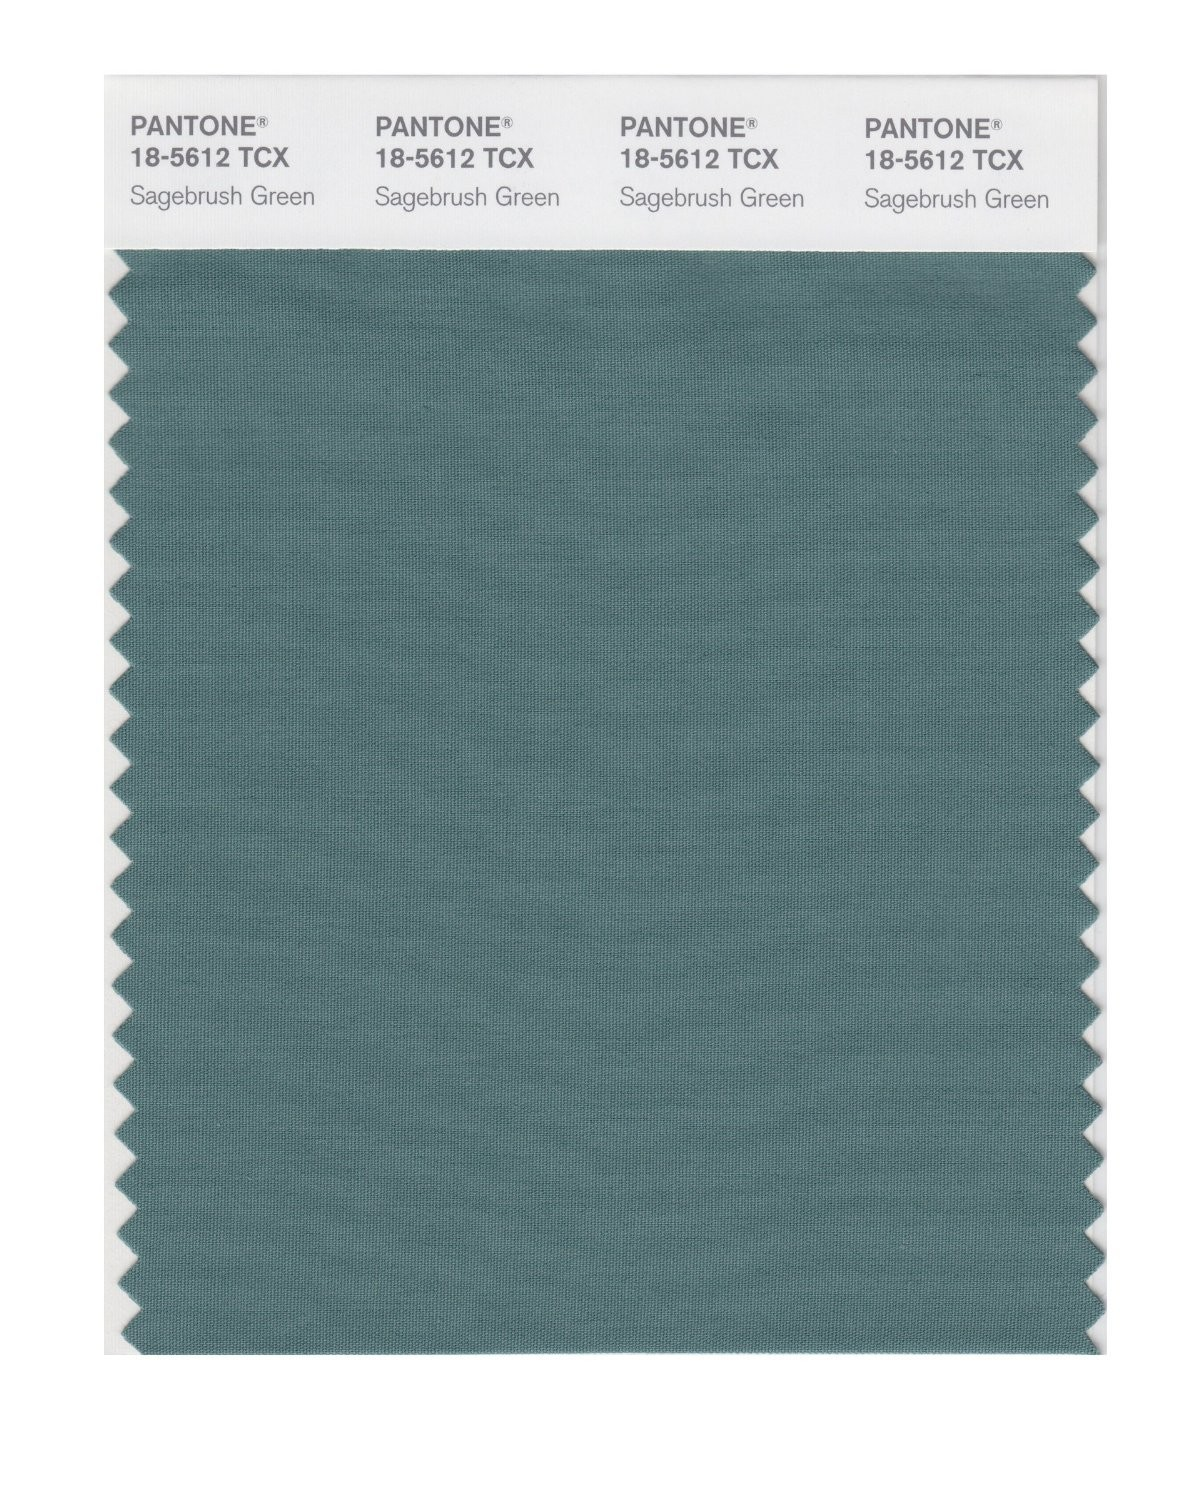 Pantone 18-5612 TCX Swatch Card Sagebush Green